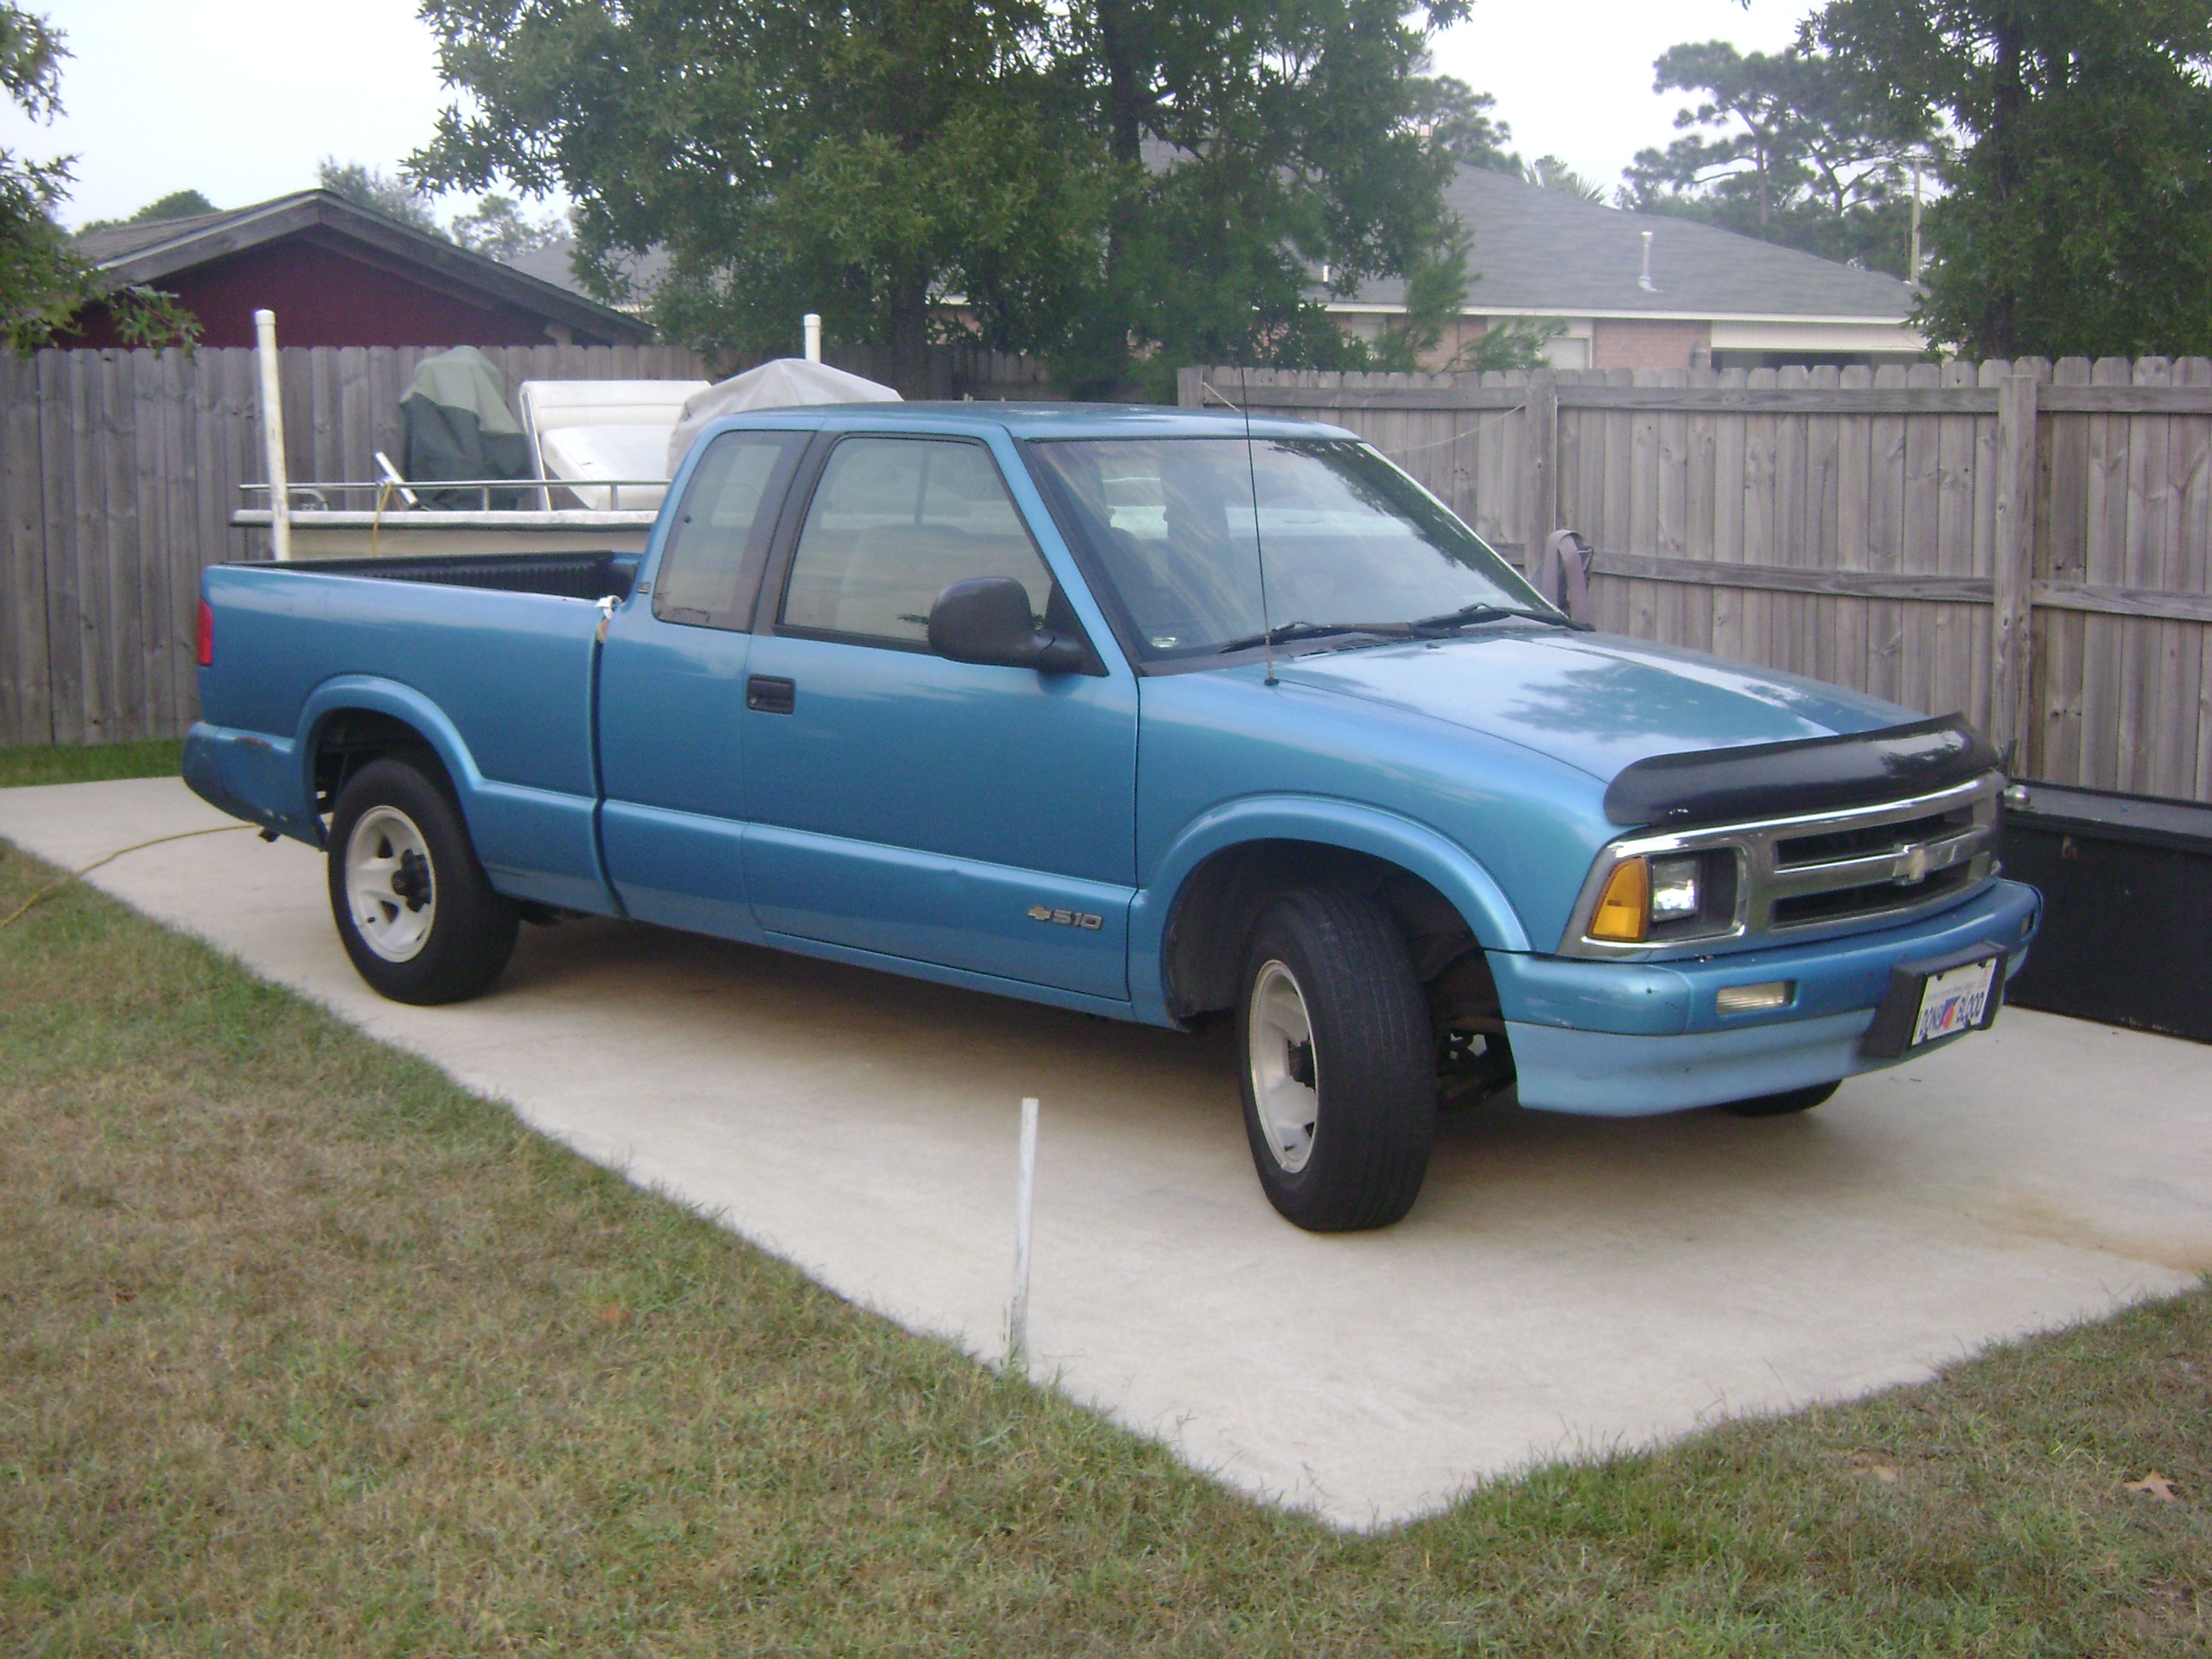 1994 chevy s10 for sale pensacola fishing forum. Black Bedroom Furniture Sets. Home Design Ideas